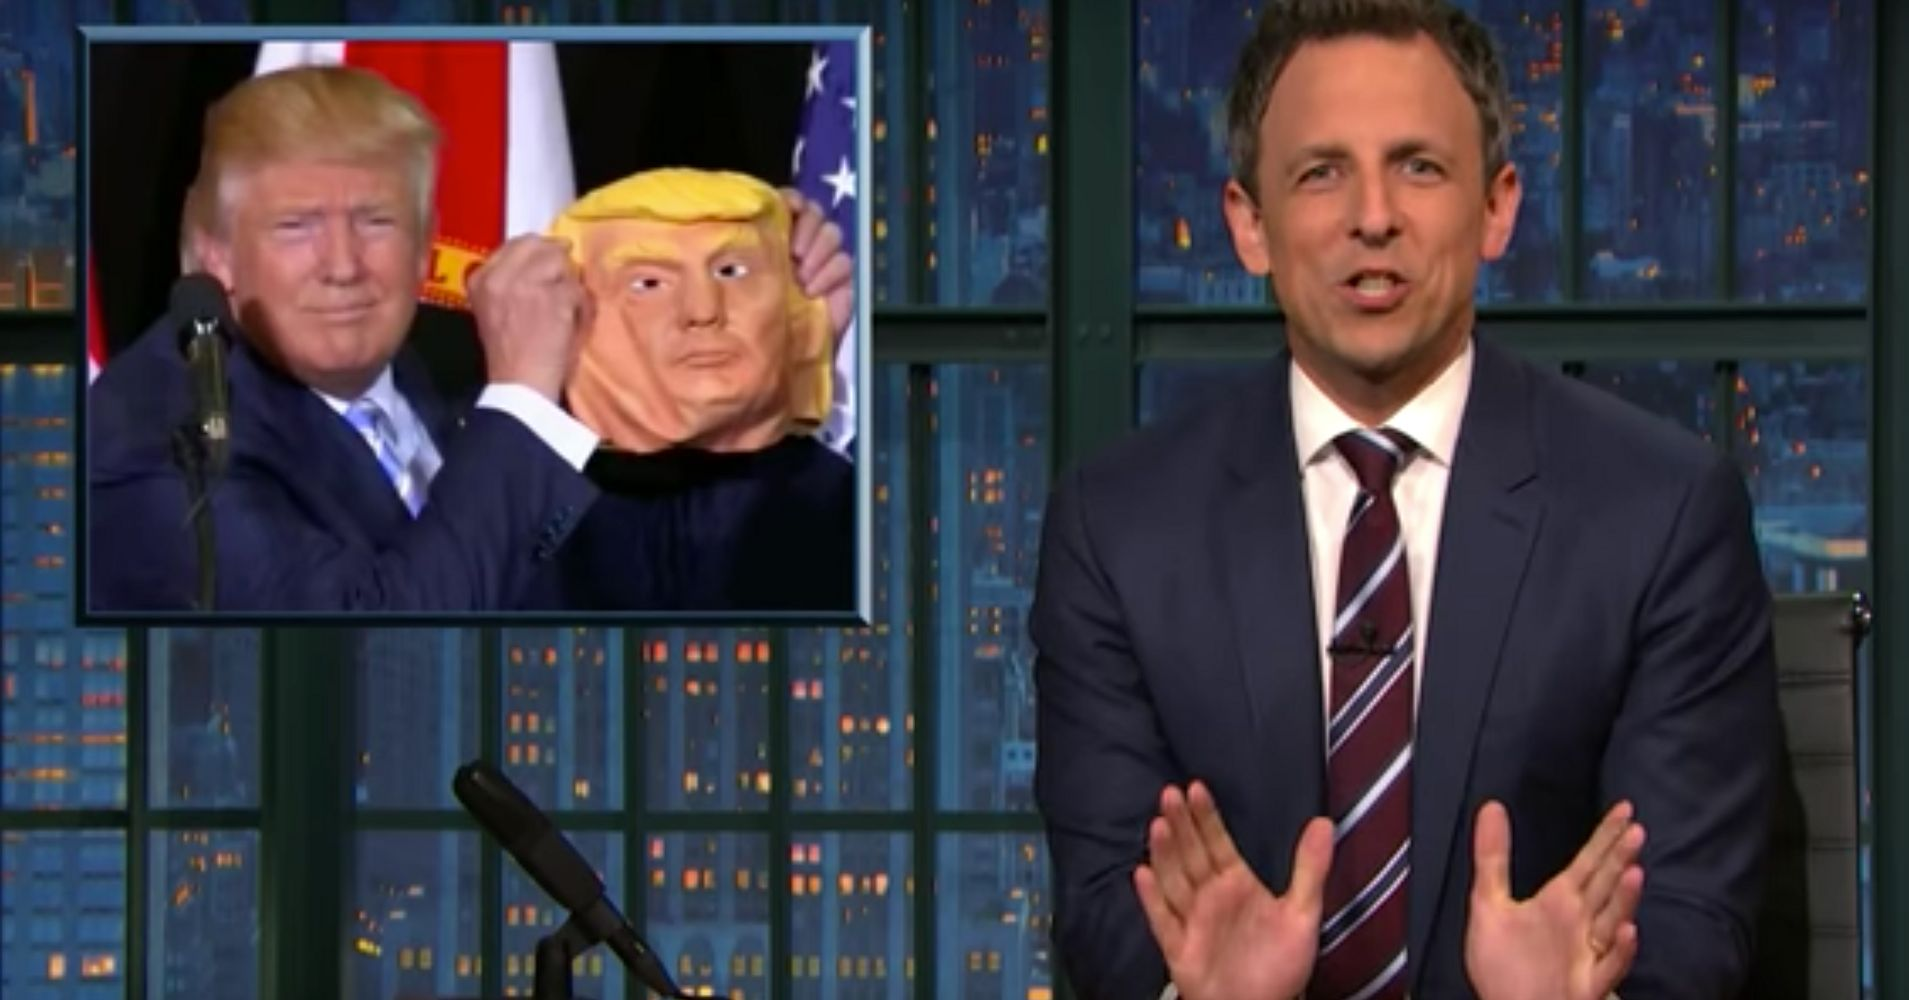 Seth Meyers Mocks 'Scooby Doo Villain' Donald Trump For The Last ...